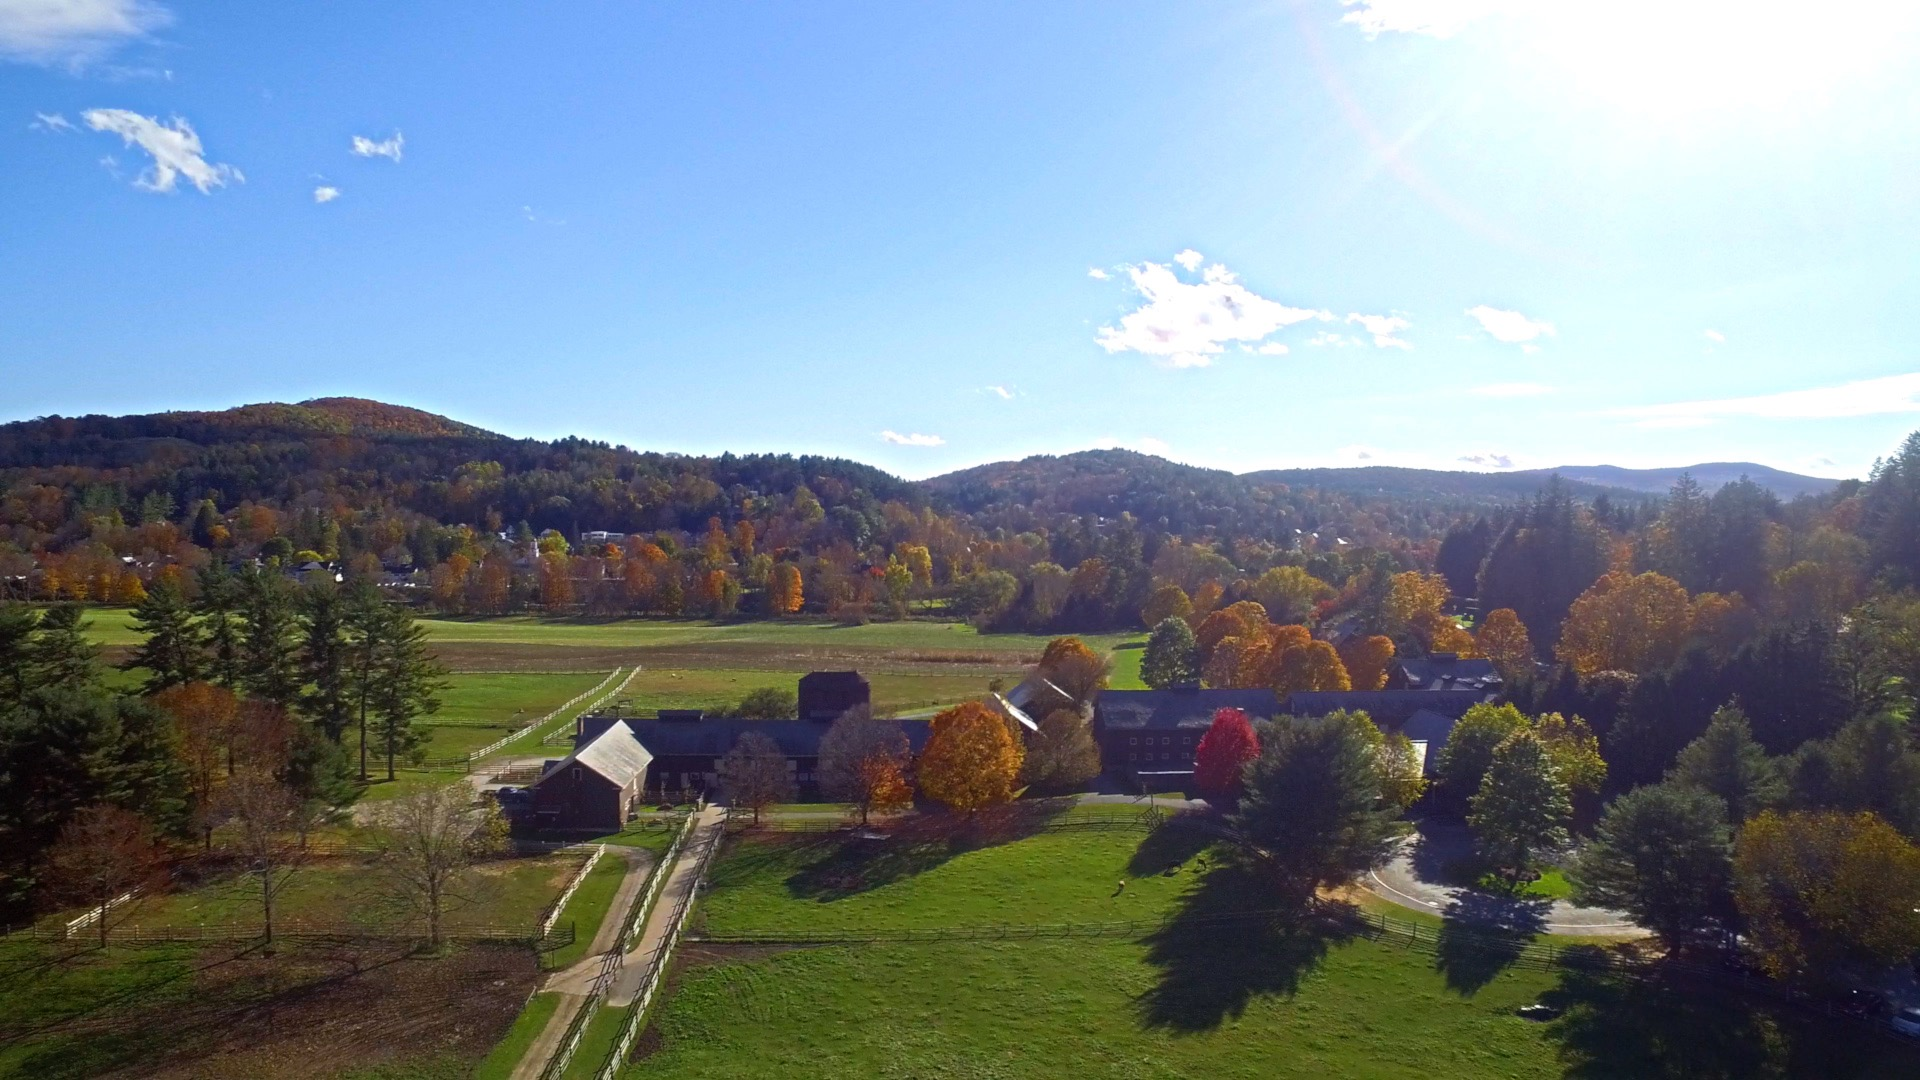 Billings Farm from the Air